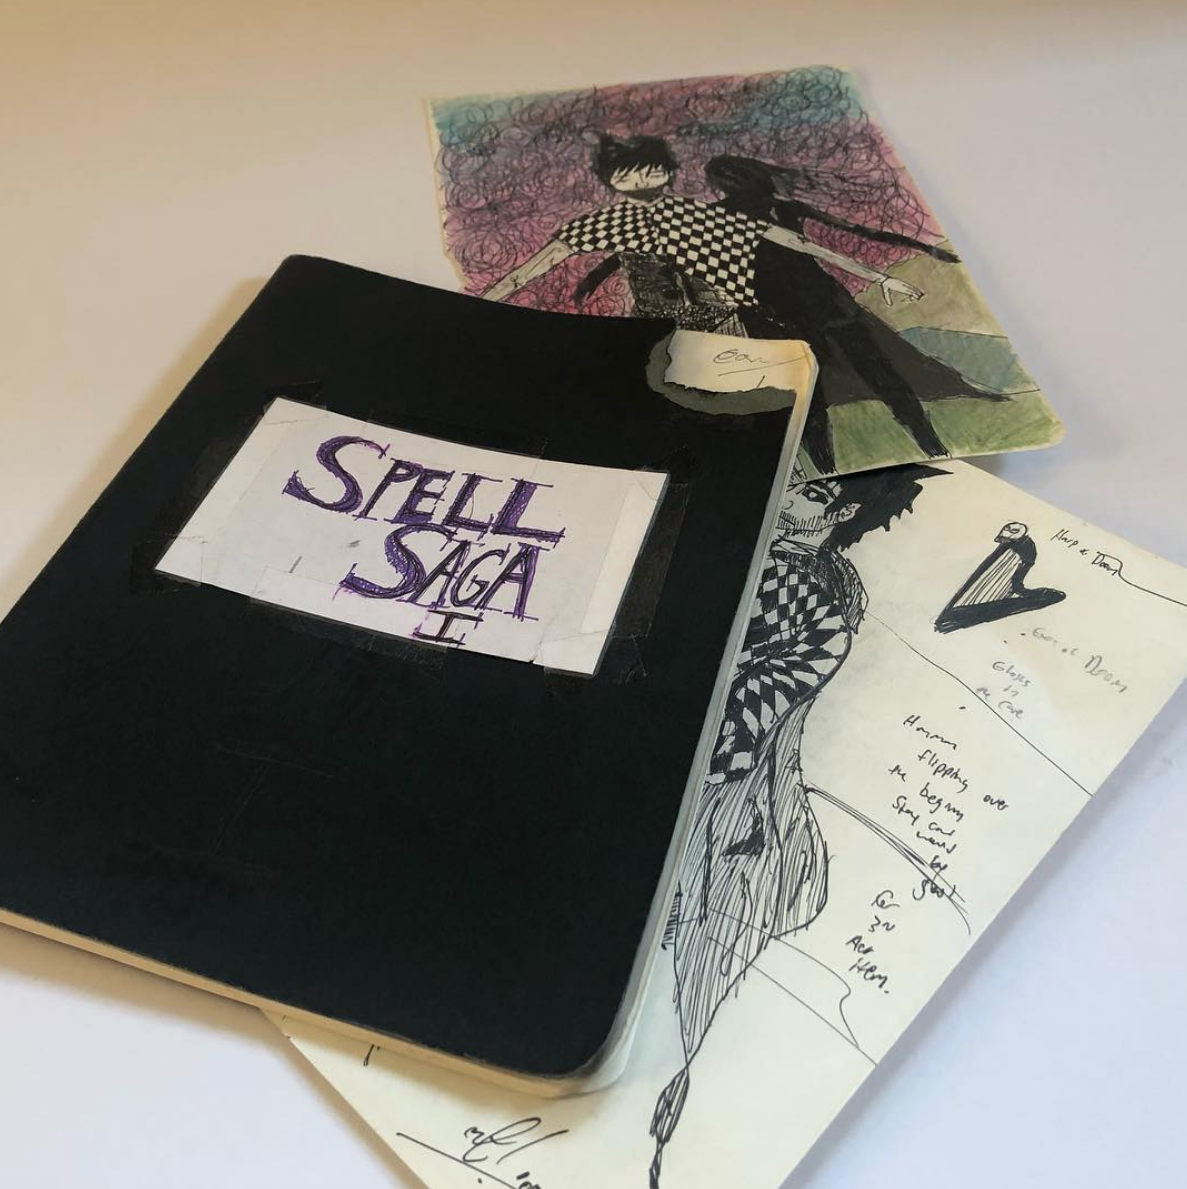 And here's my original design journal, gifted to Dheyrdre in Brazil (who you can also play with in the Prelude deck) I can't believe my original notes for the game are on their way down South as I type this (minus a few pages I just could not part with).